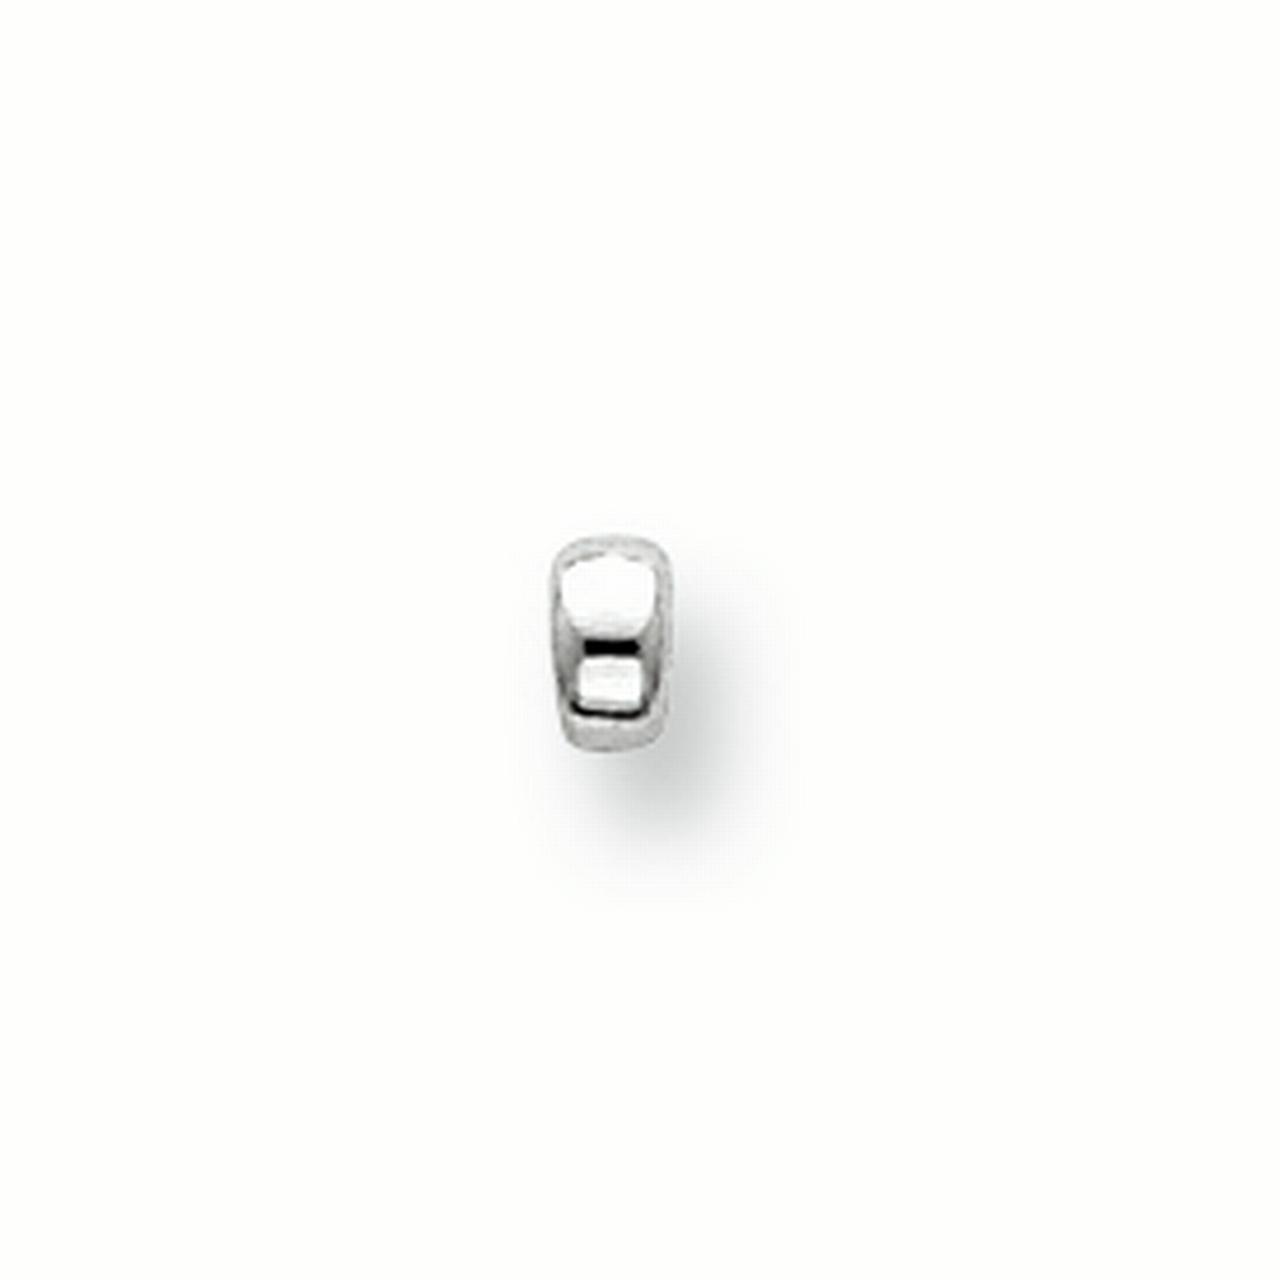 Sterling Silver 1.6 x 3.2mm Polished Roundel